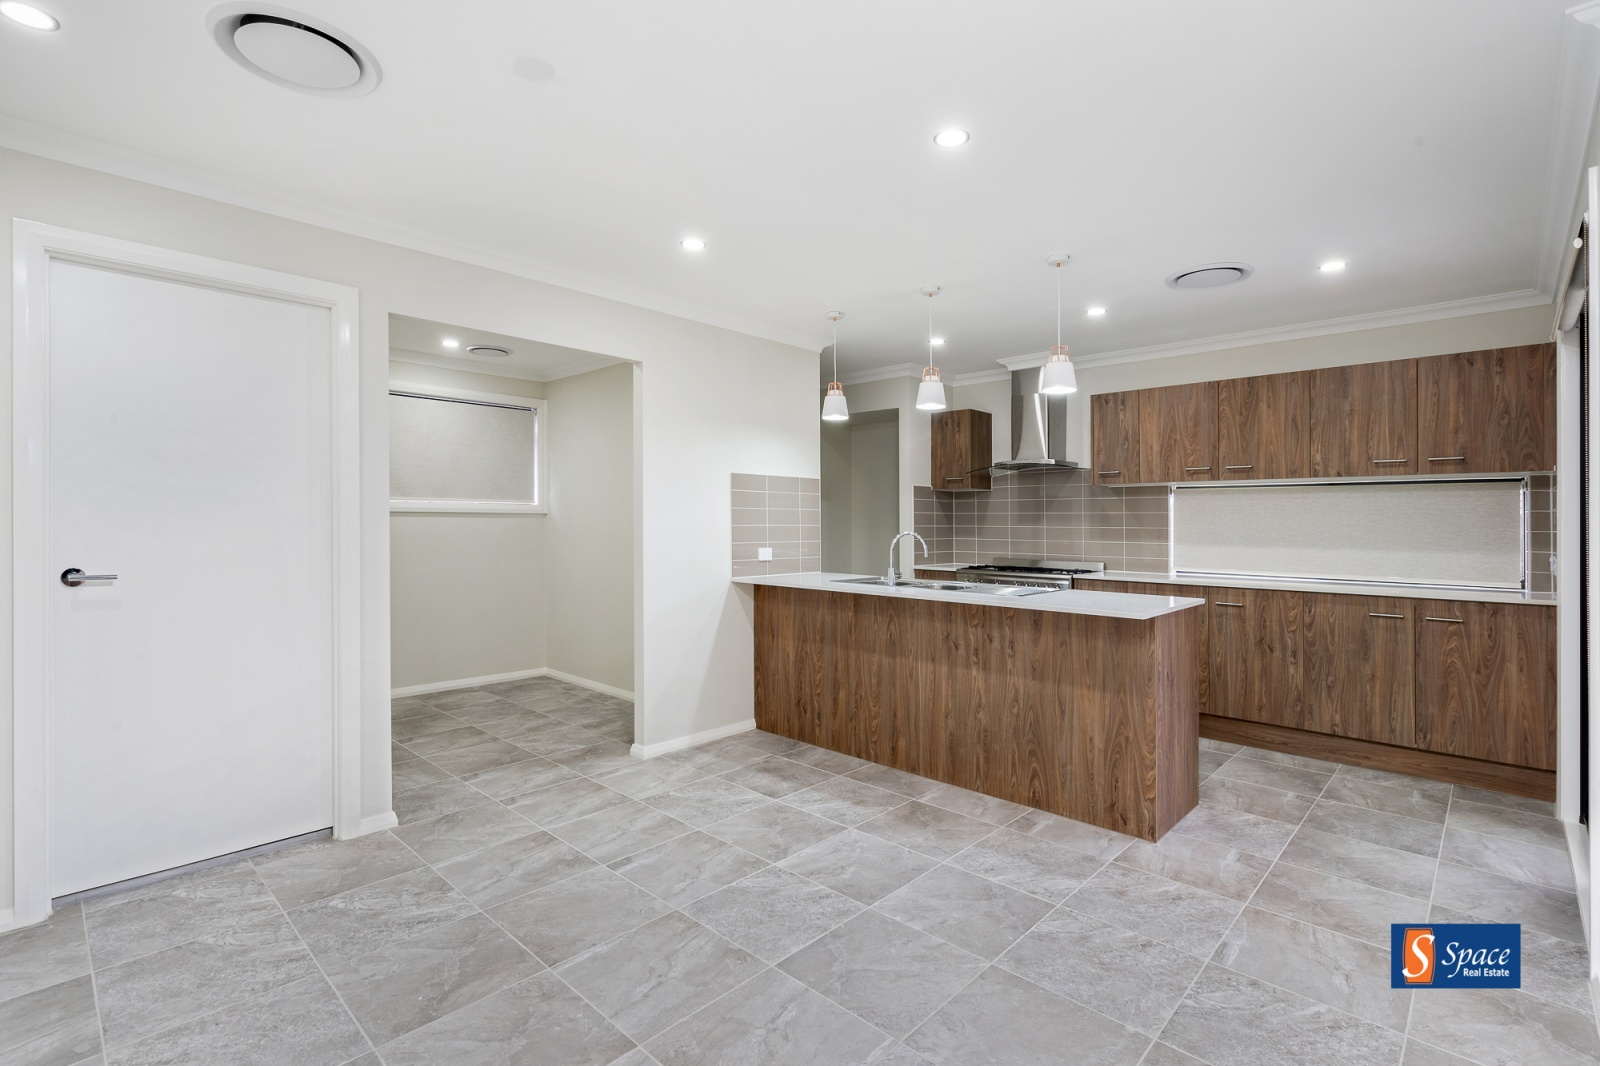 35 Loveday Street,Oran Park,NSW,4 Bedrooms Bedrooms,2 BathroomsBathrooms,House,Loveday Street,1468